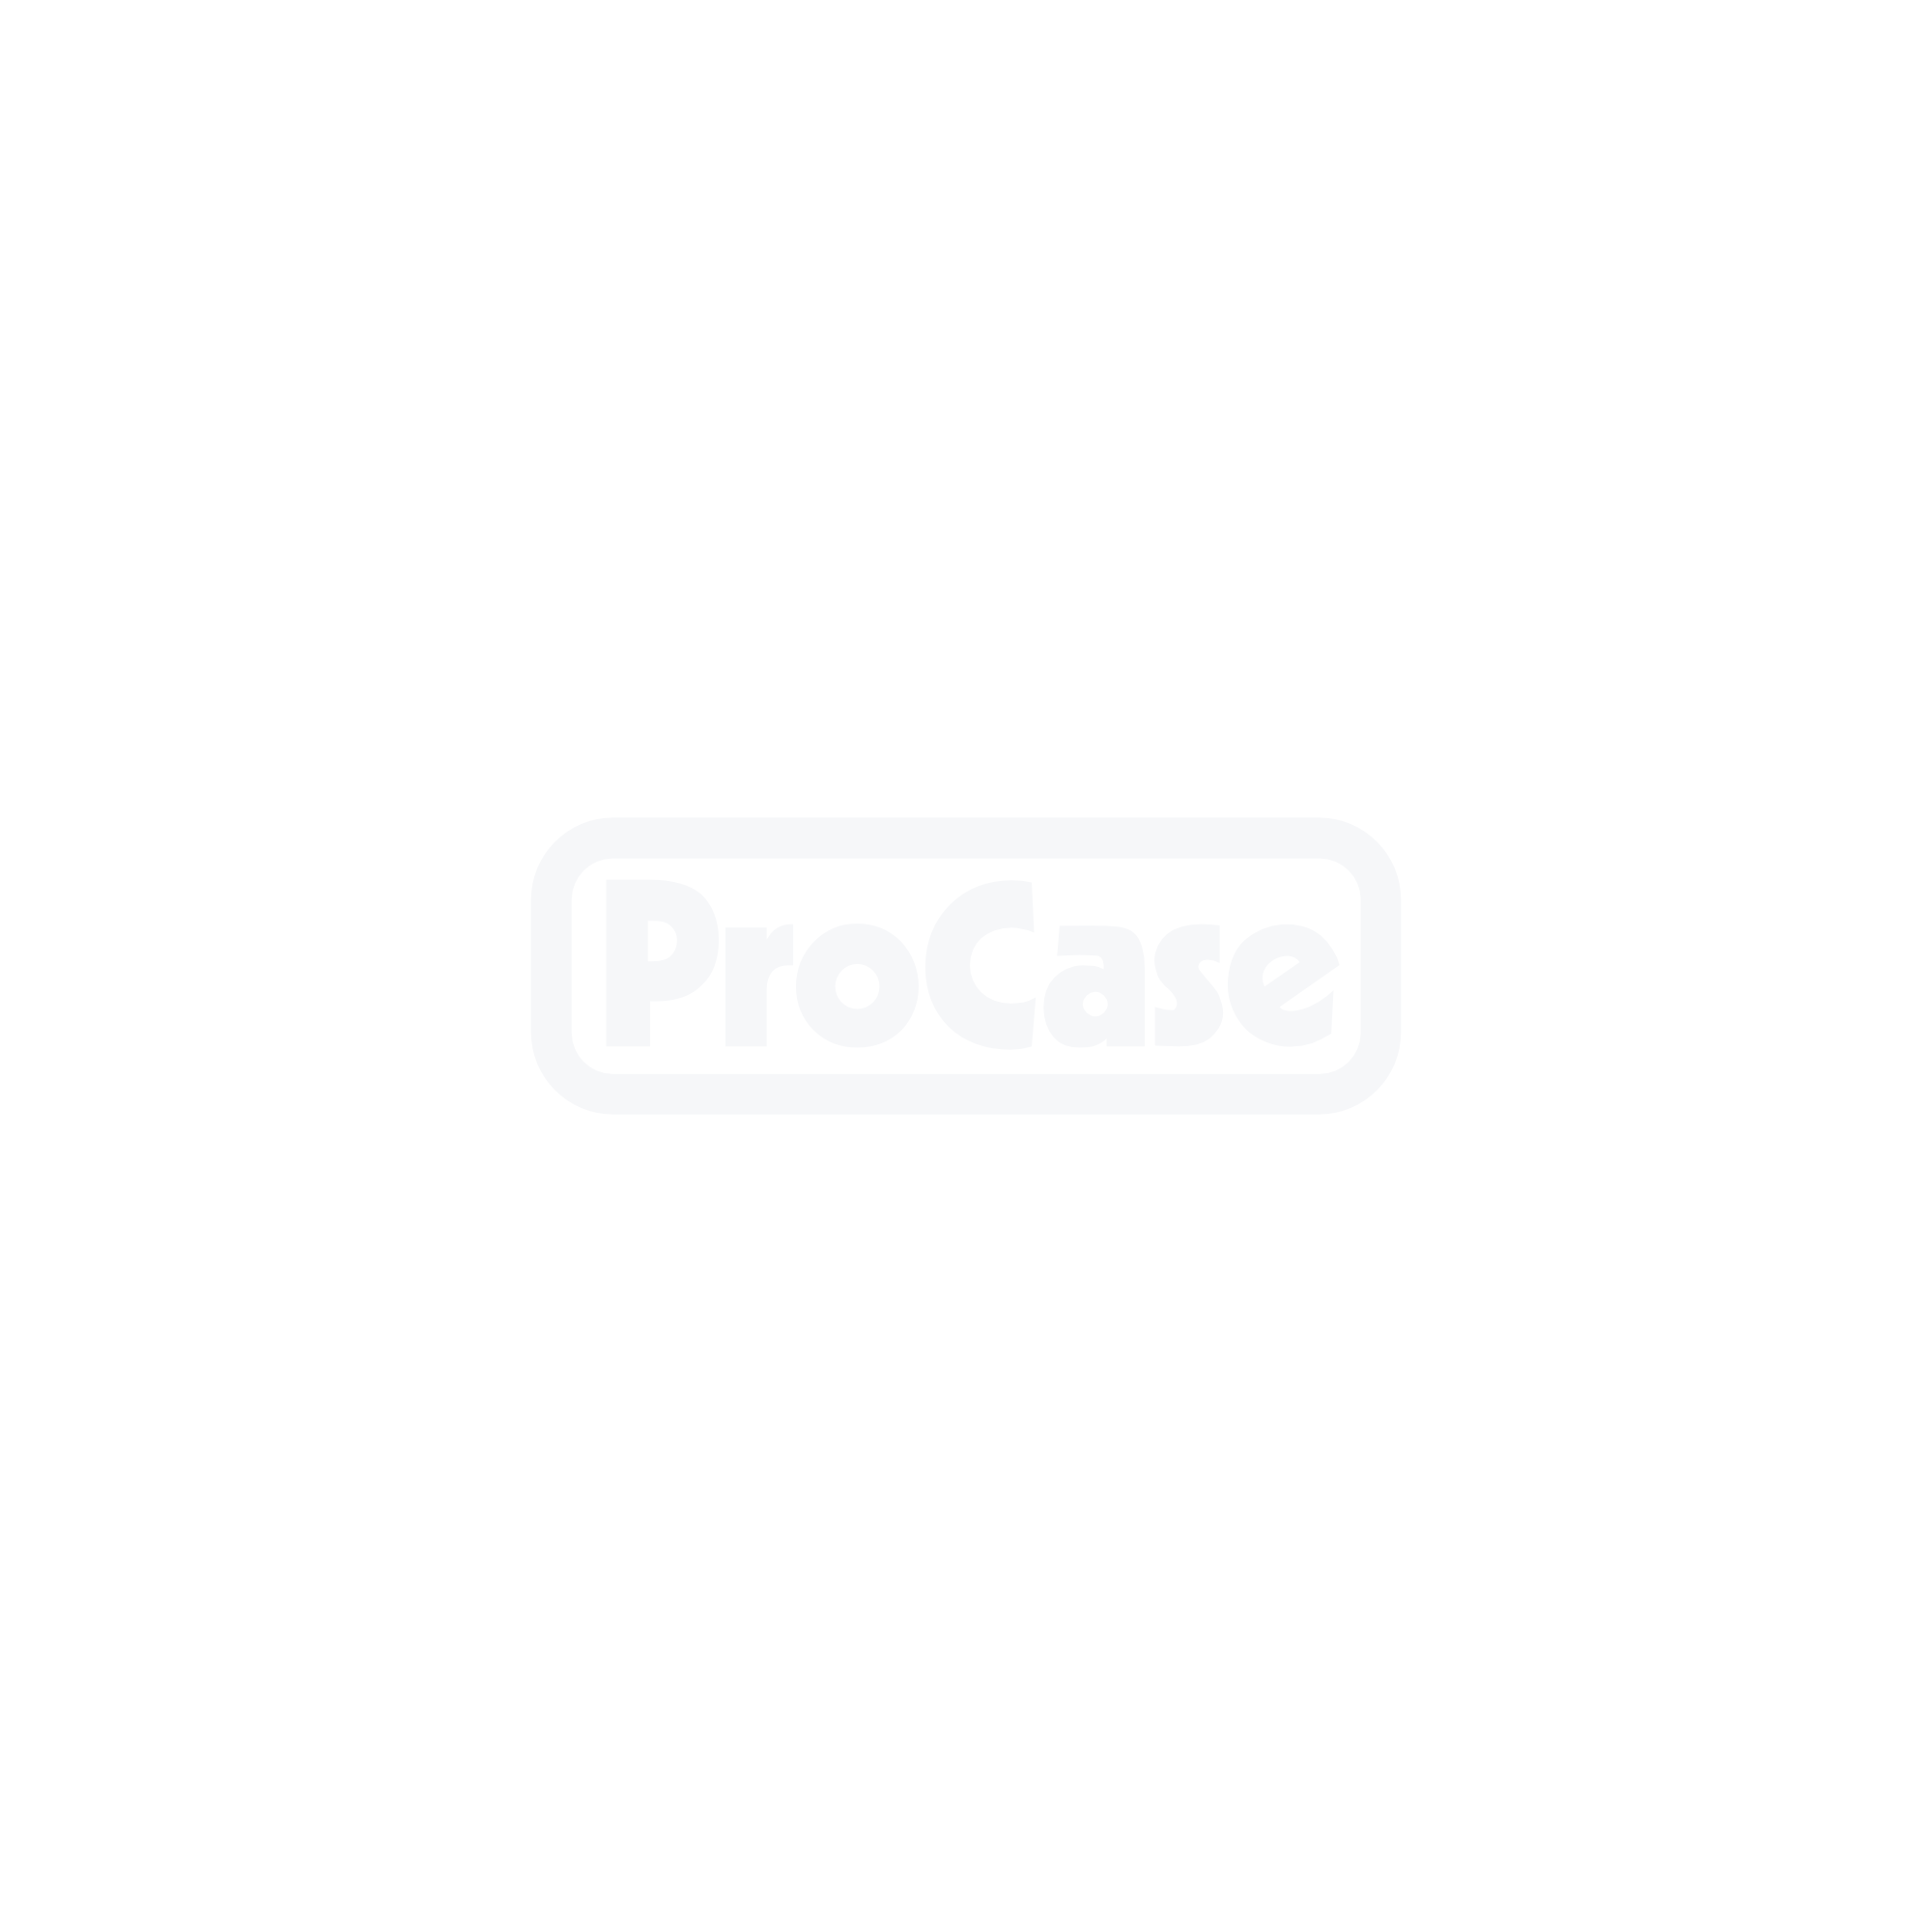 Flightcase für 4x KS Audio CPD 08 / CL 208